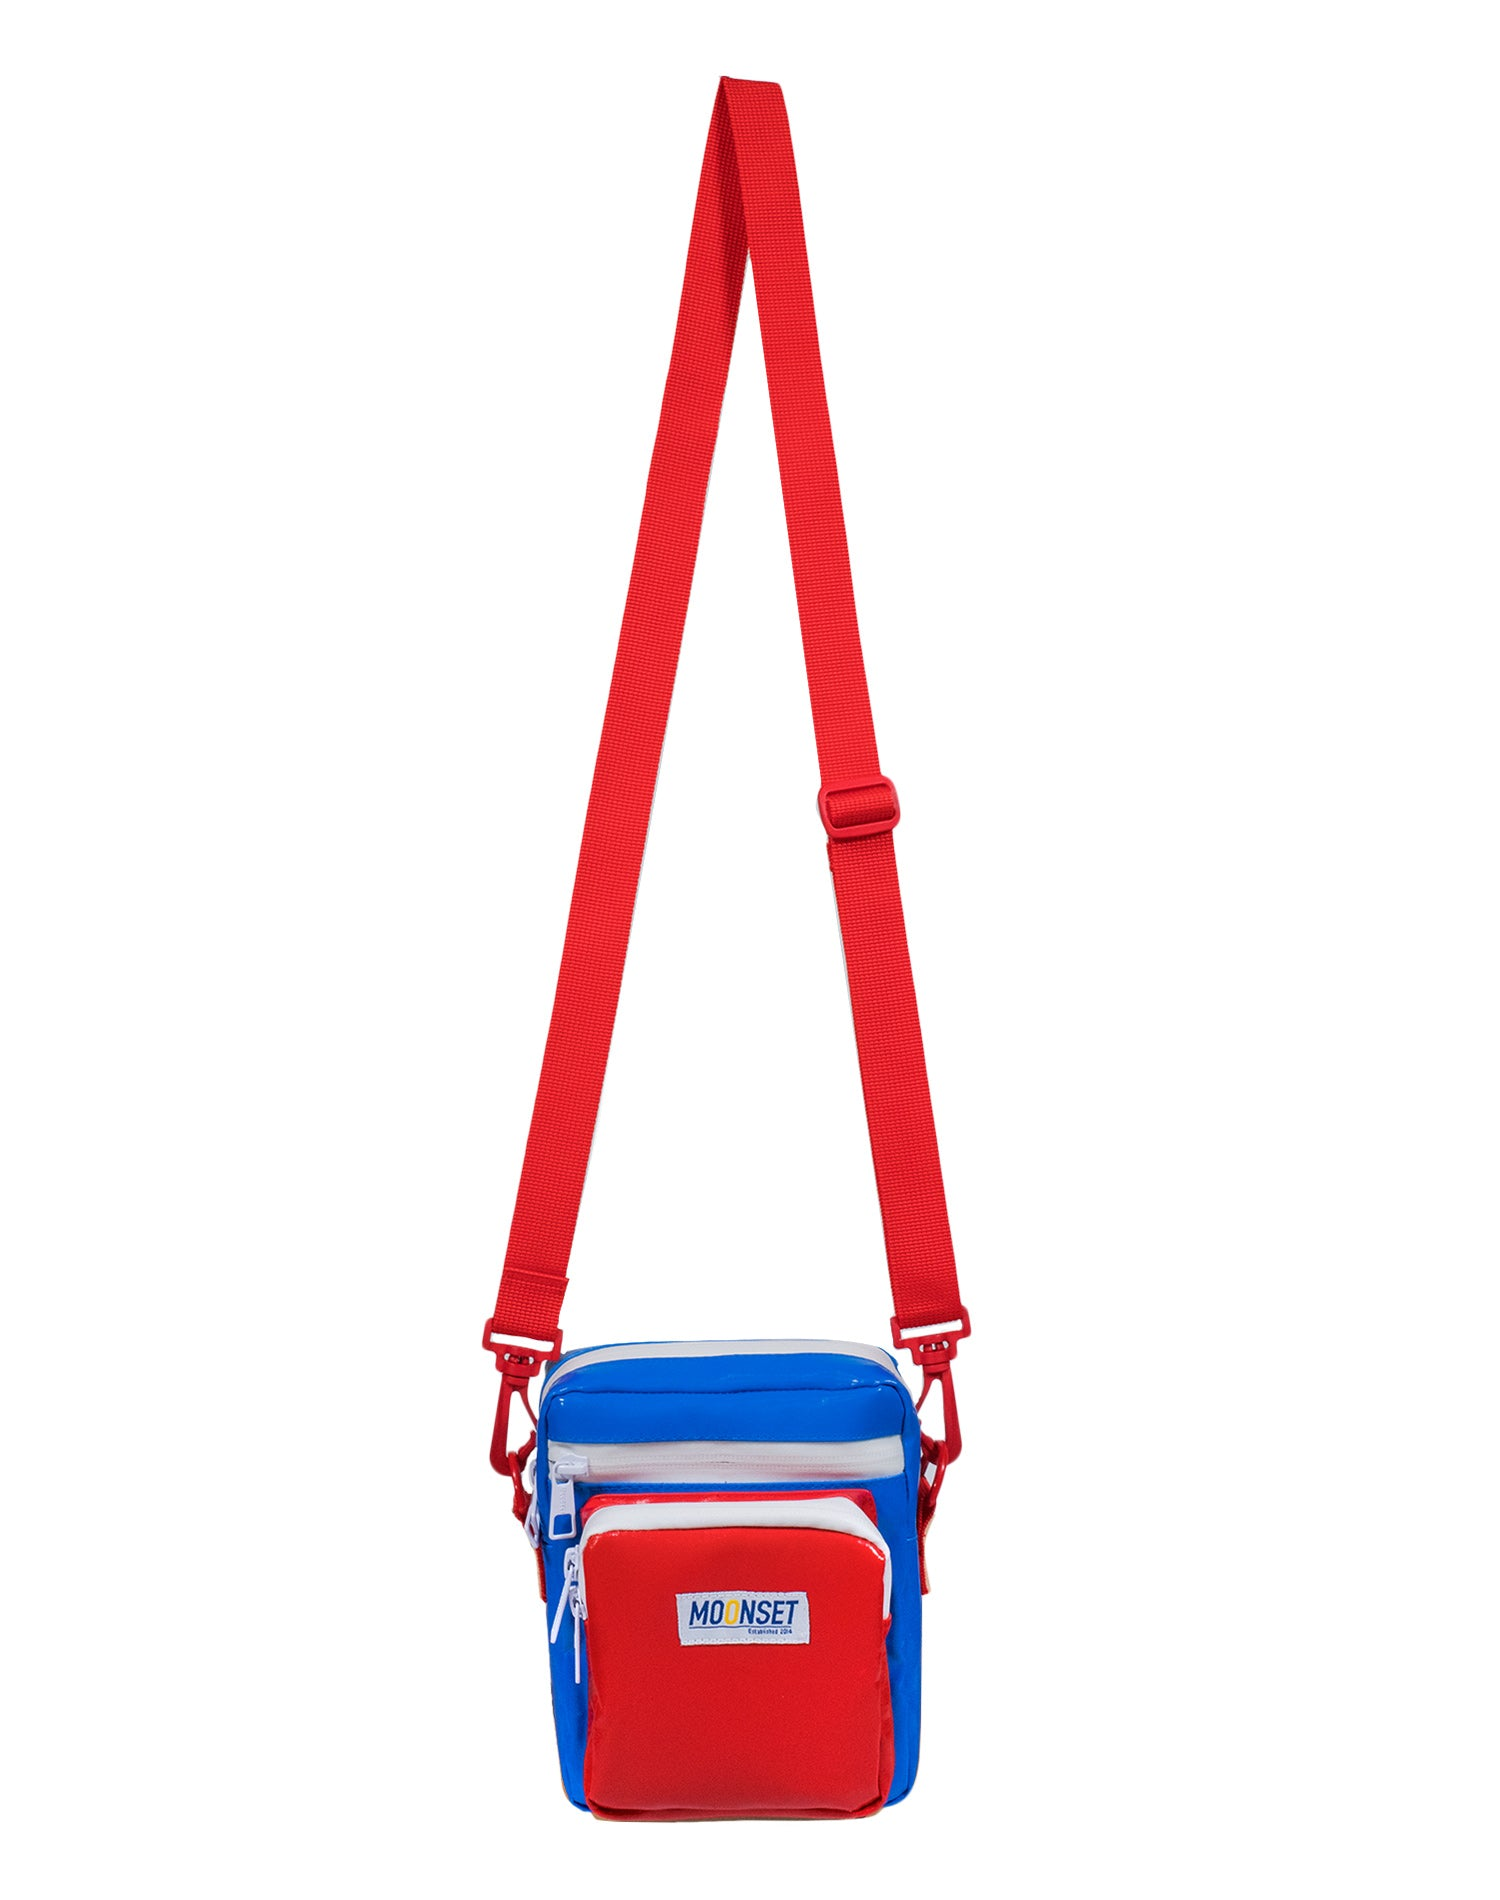 Patriot Flag Tarpaulin Canvas Shoulder Bag.藍紅系防水帆布單肩斜挎袋